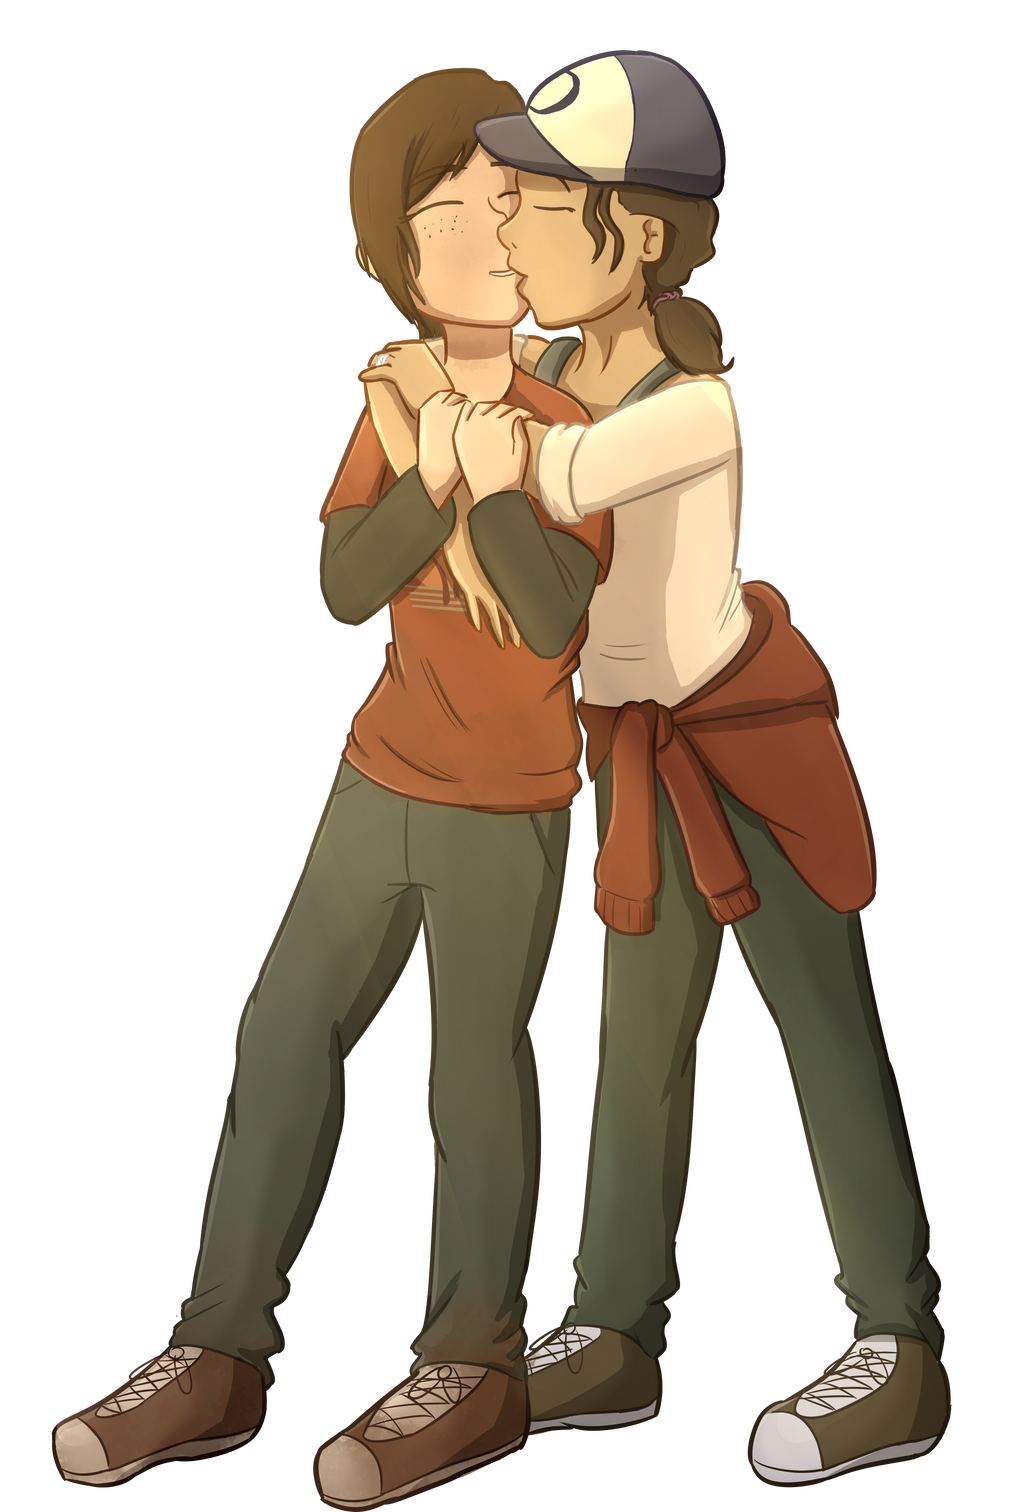 Commission 7 8 Ellie And Clementine By Foxhatart On Deviantart